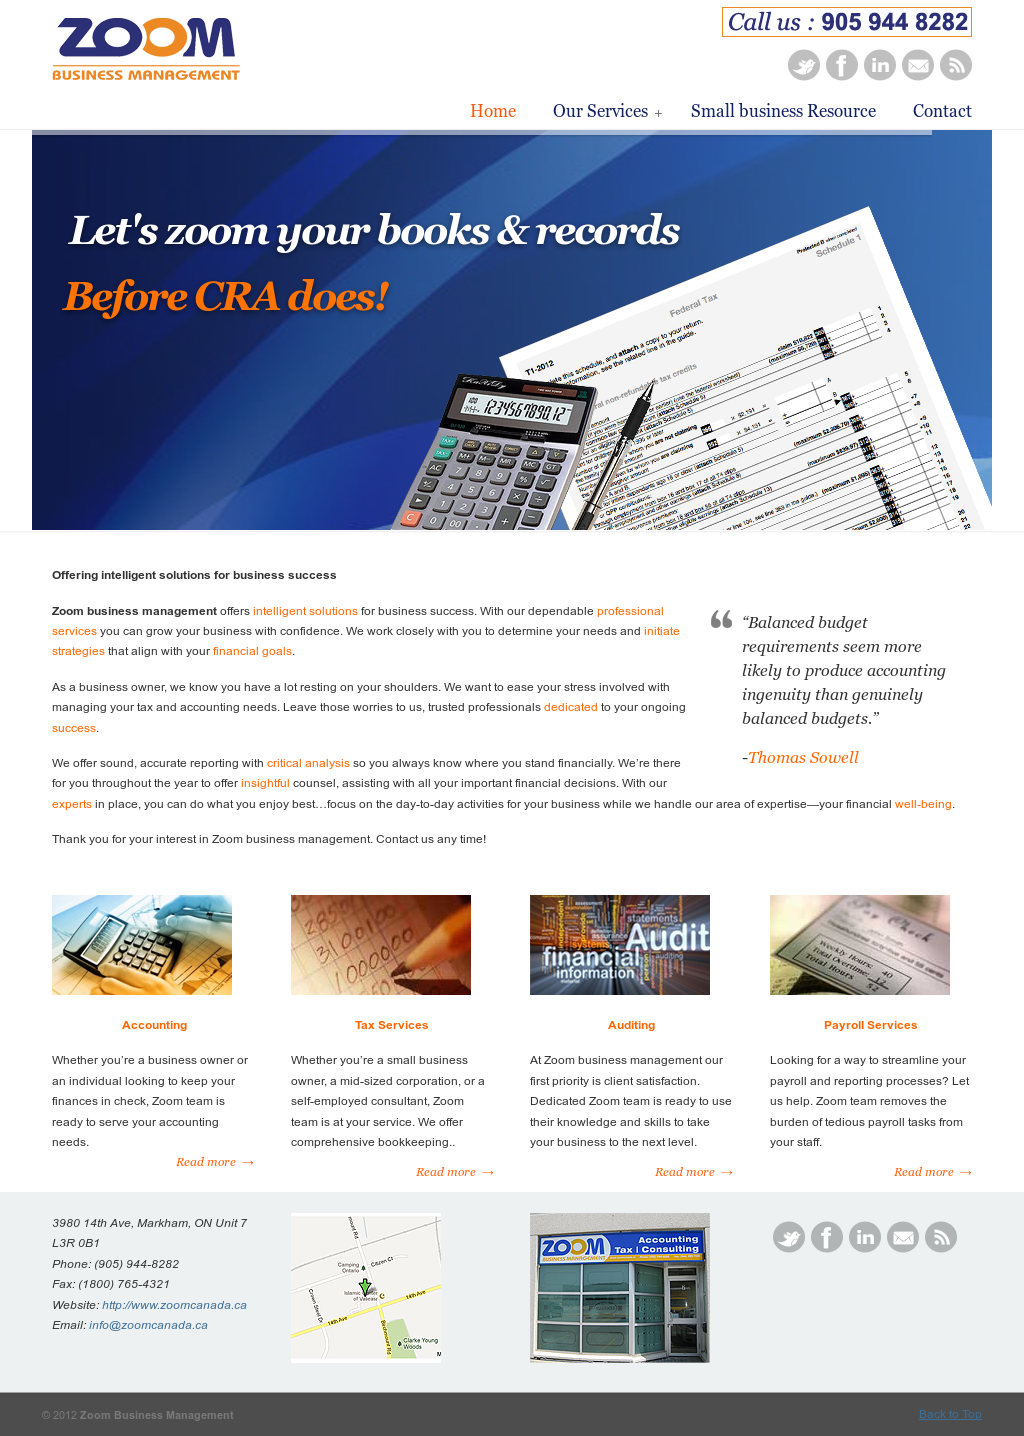 Zoom Business Management Competitors, Revenue and Employees